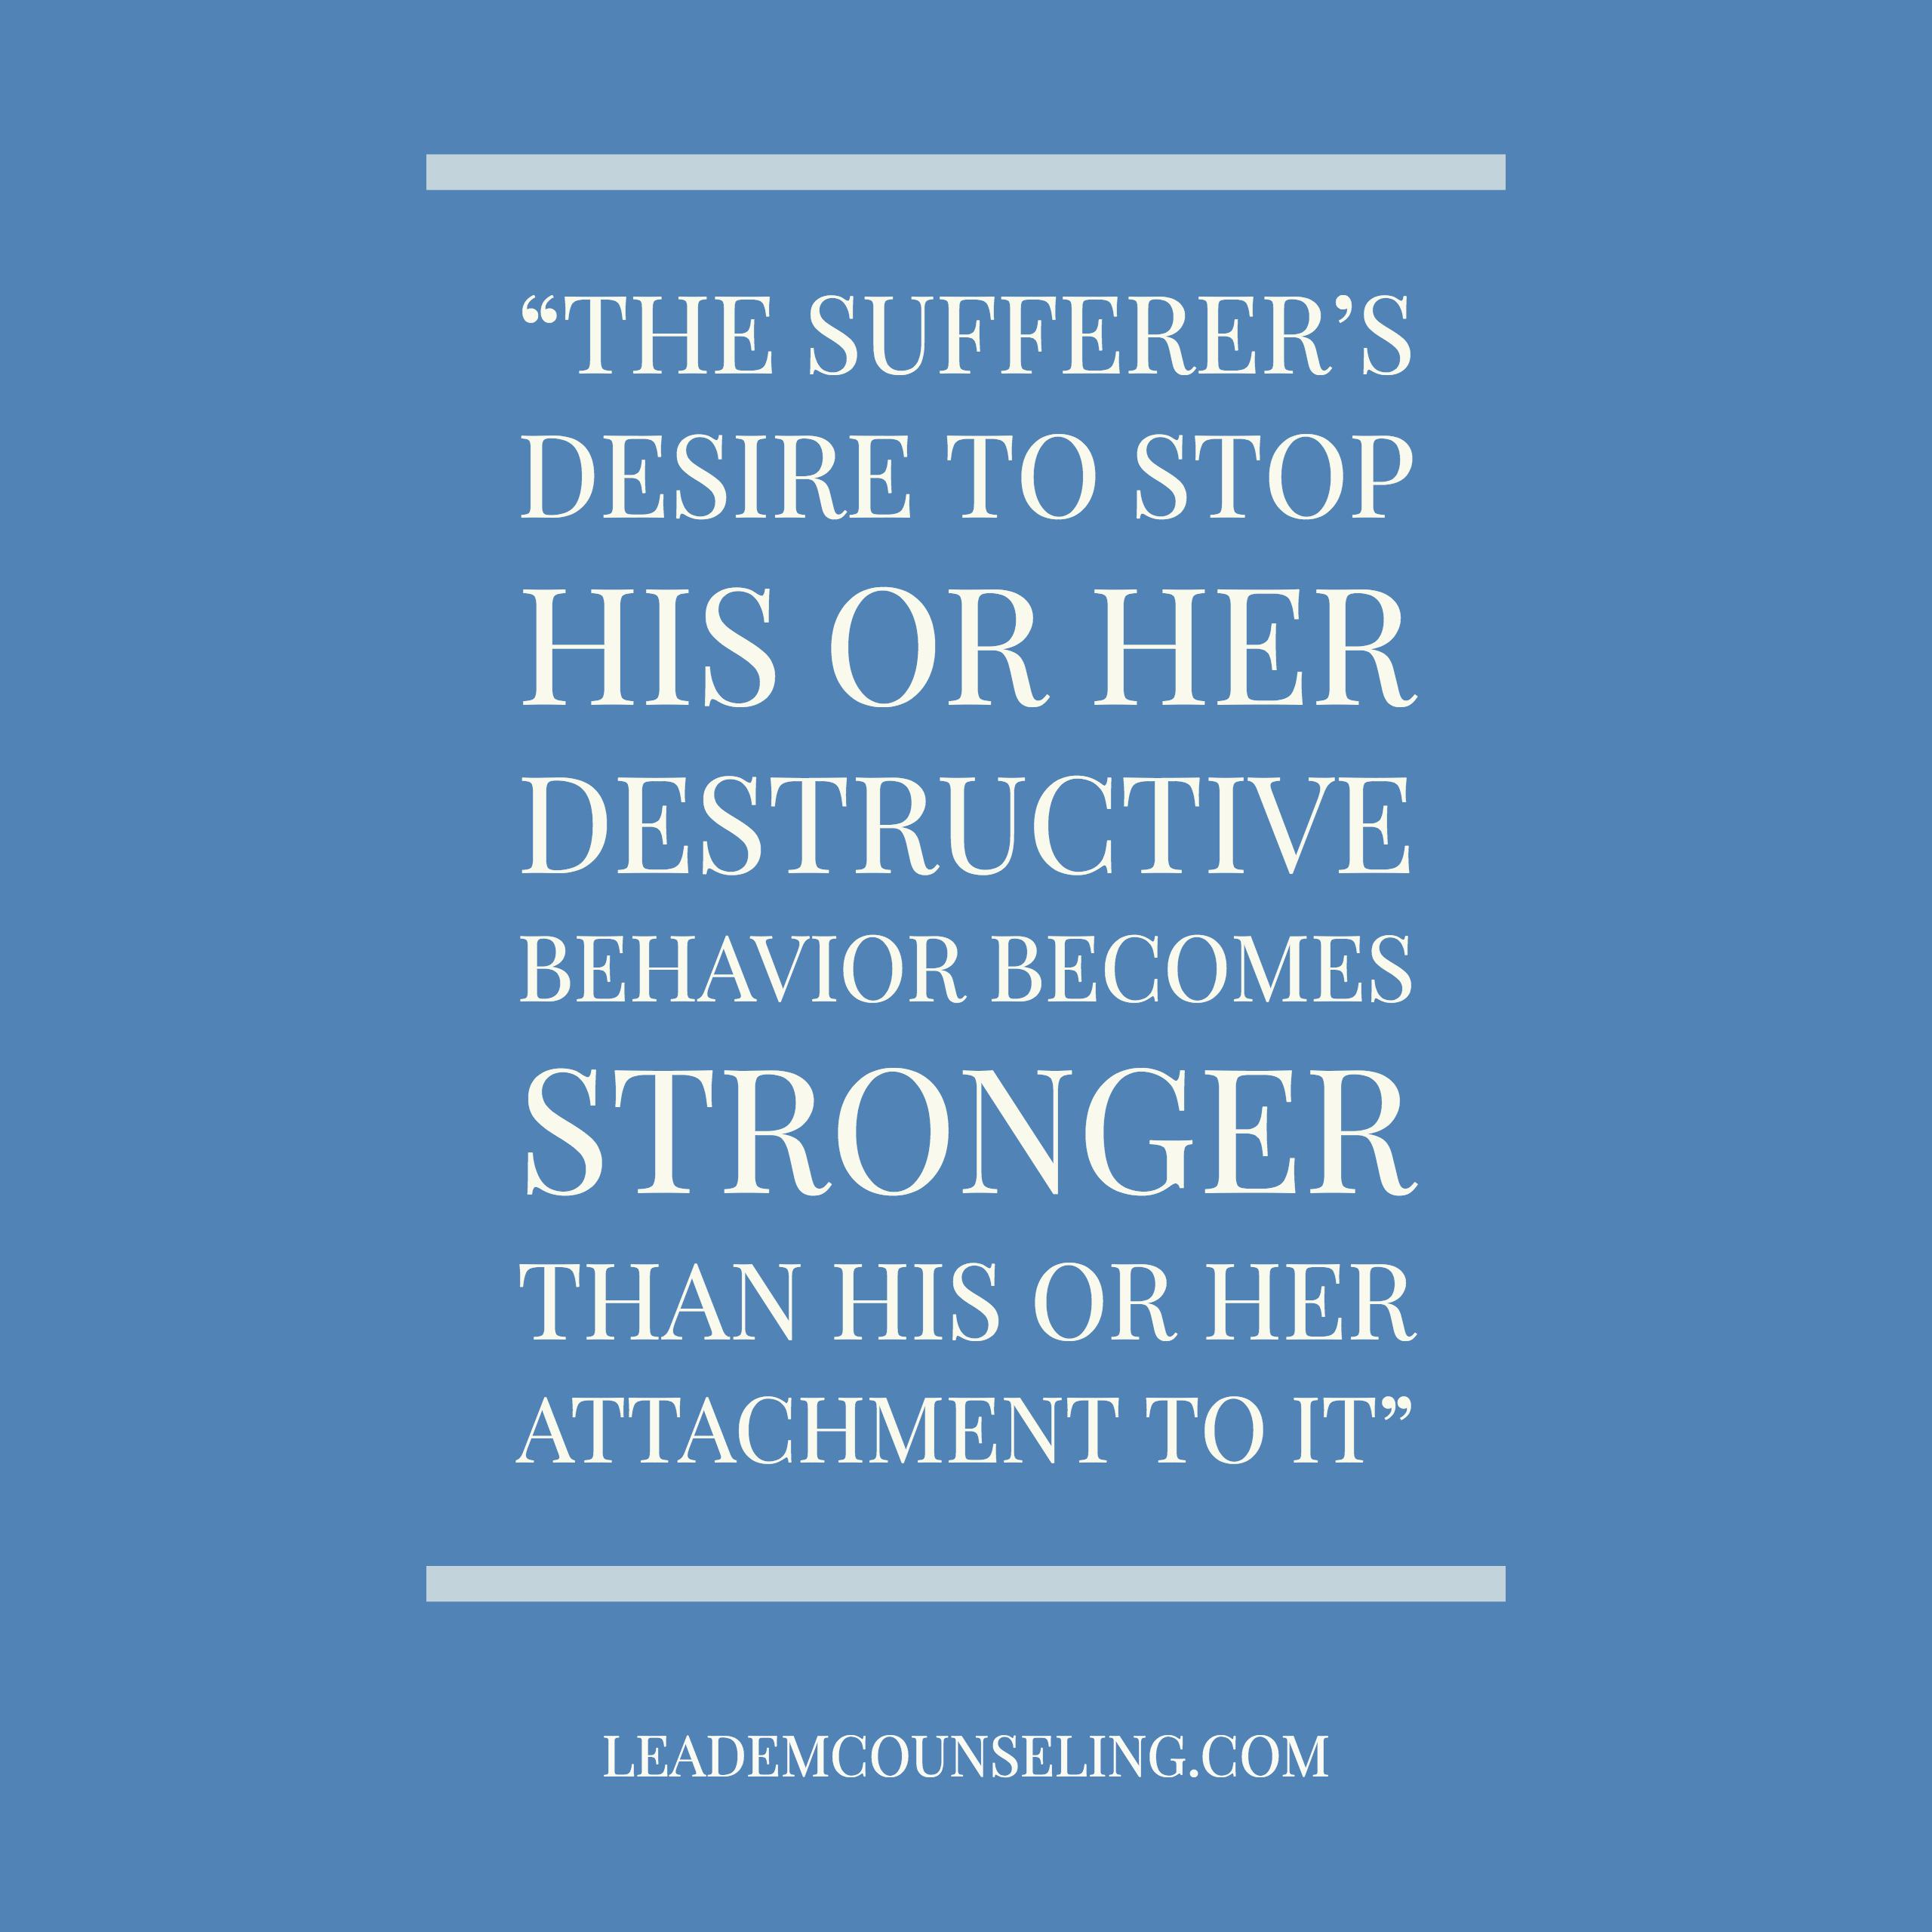 The sufferer's desire to stop his or her destructive behavior becomes stronger than his or her attachment to it